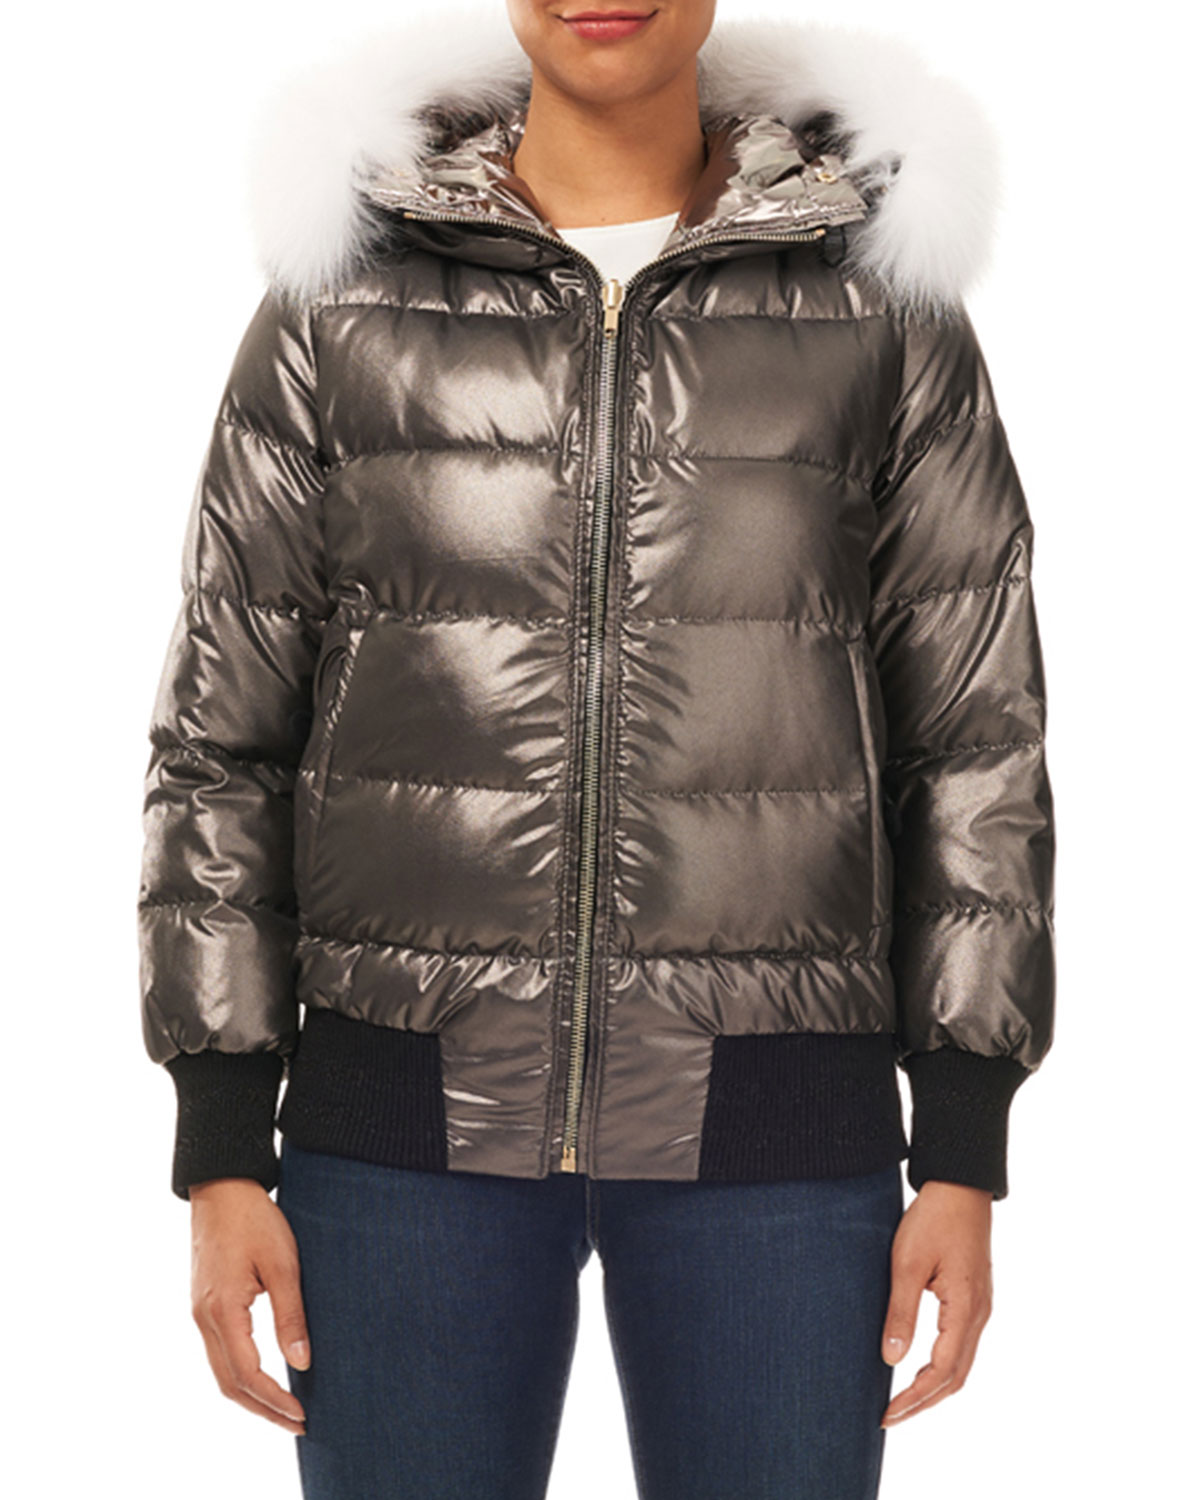 Reversible Quilted Puffer Bomber Jacket w/ Detachable Fox Hood Trim